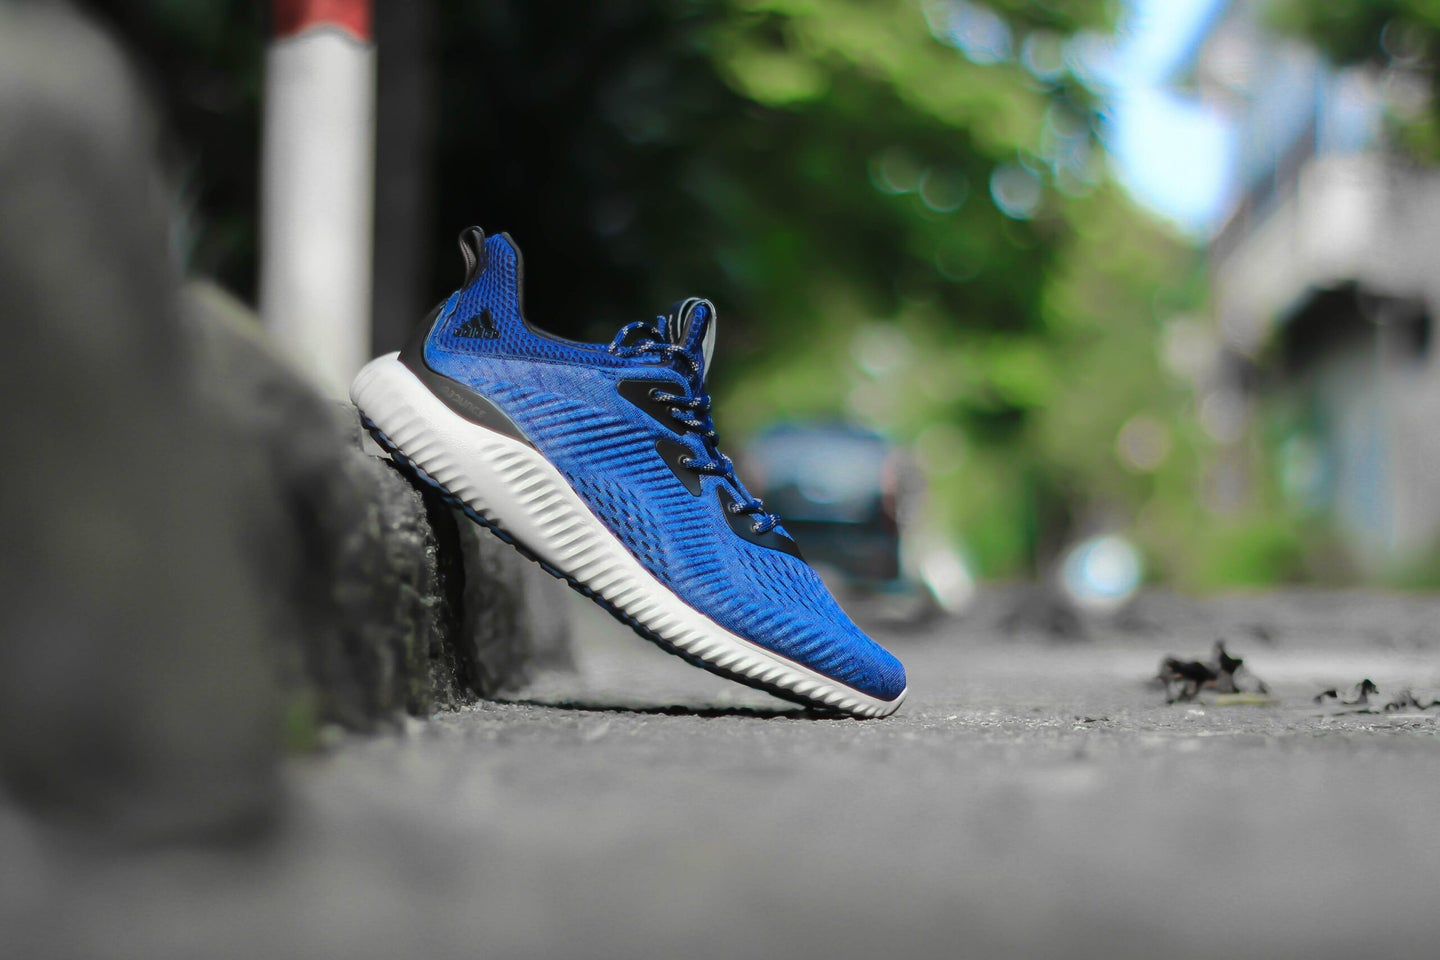 blue sneaker with the heel on the curb and toe on the street